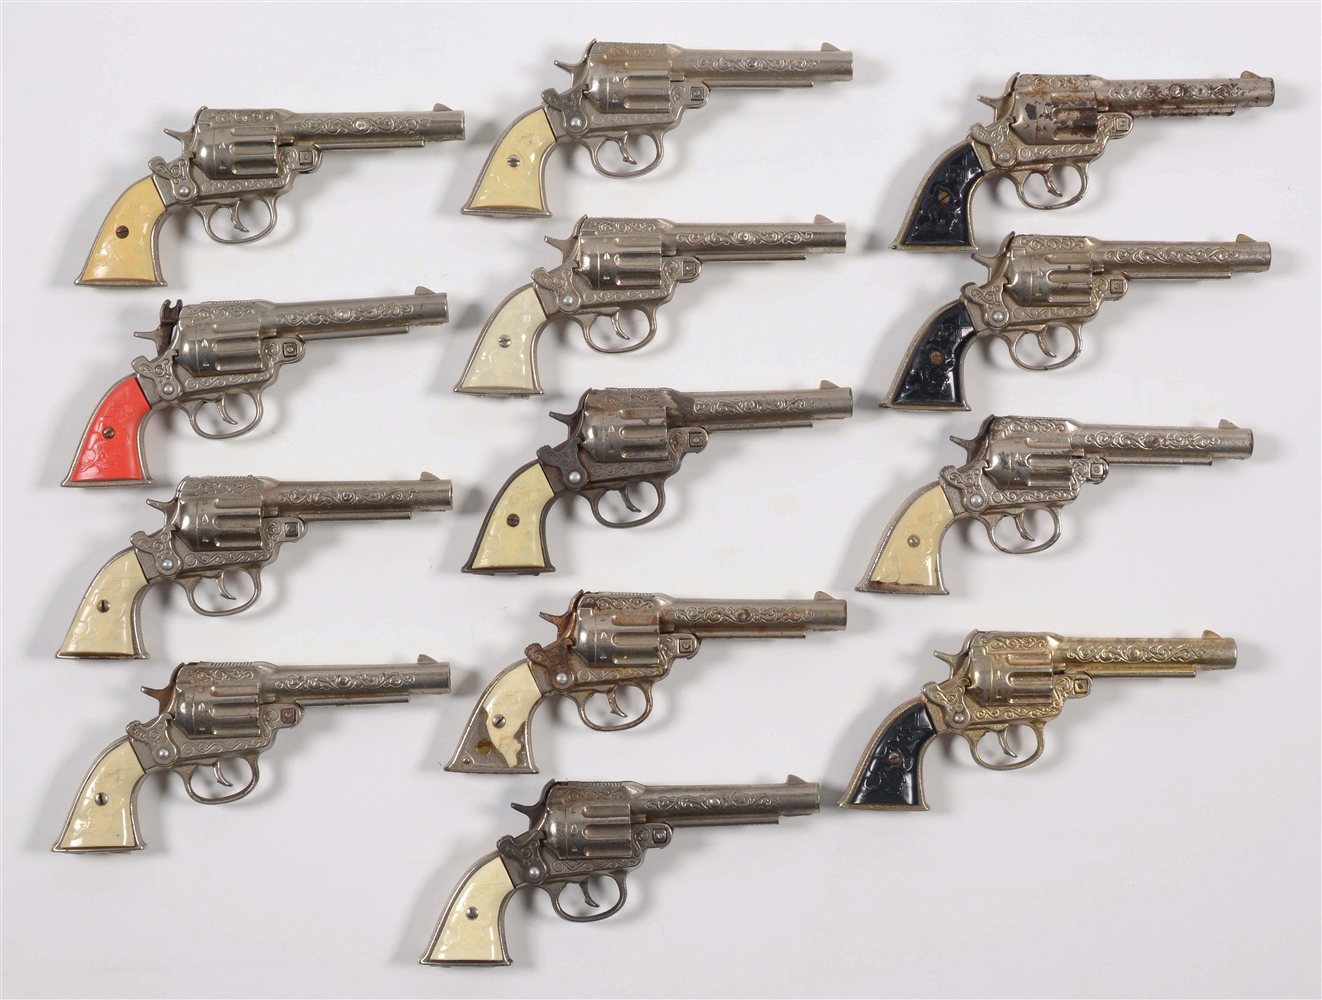 LOT OF 13 VARIOUS DIFFERENT PEACEMAKER CAP PISTOLS.